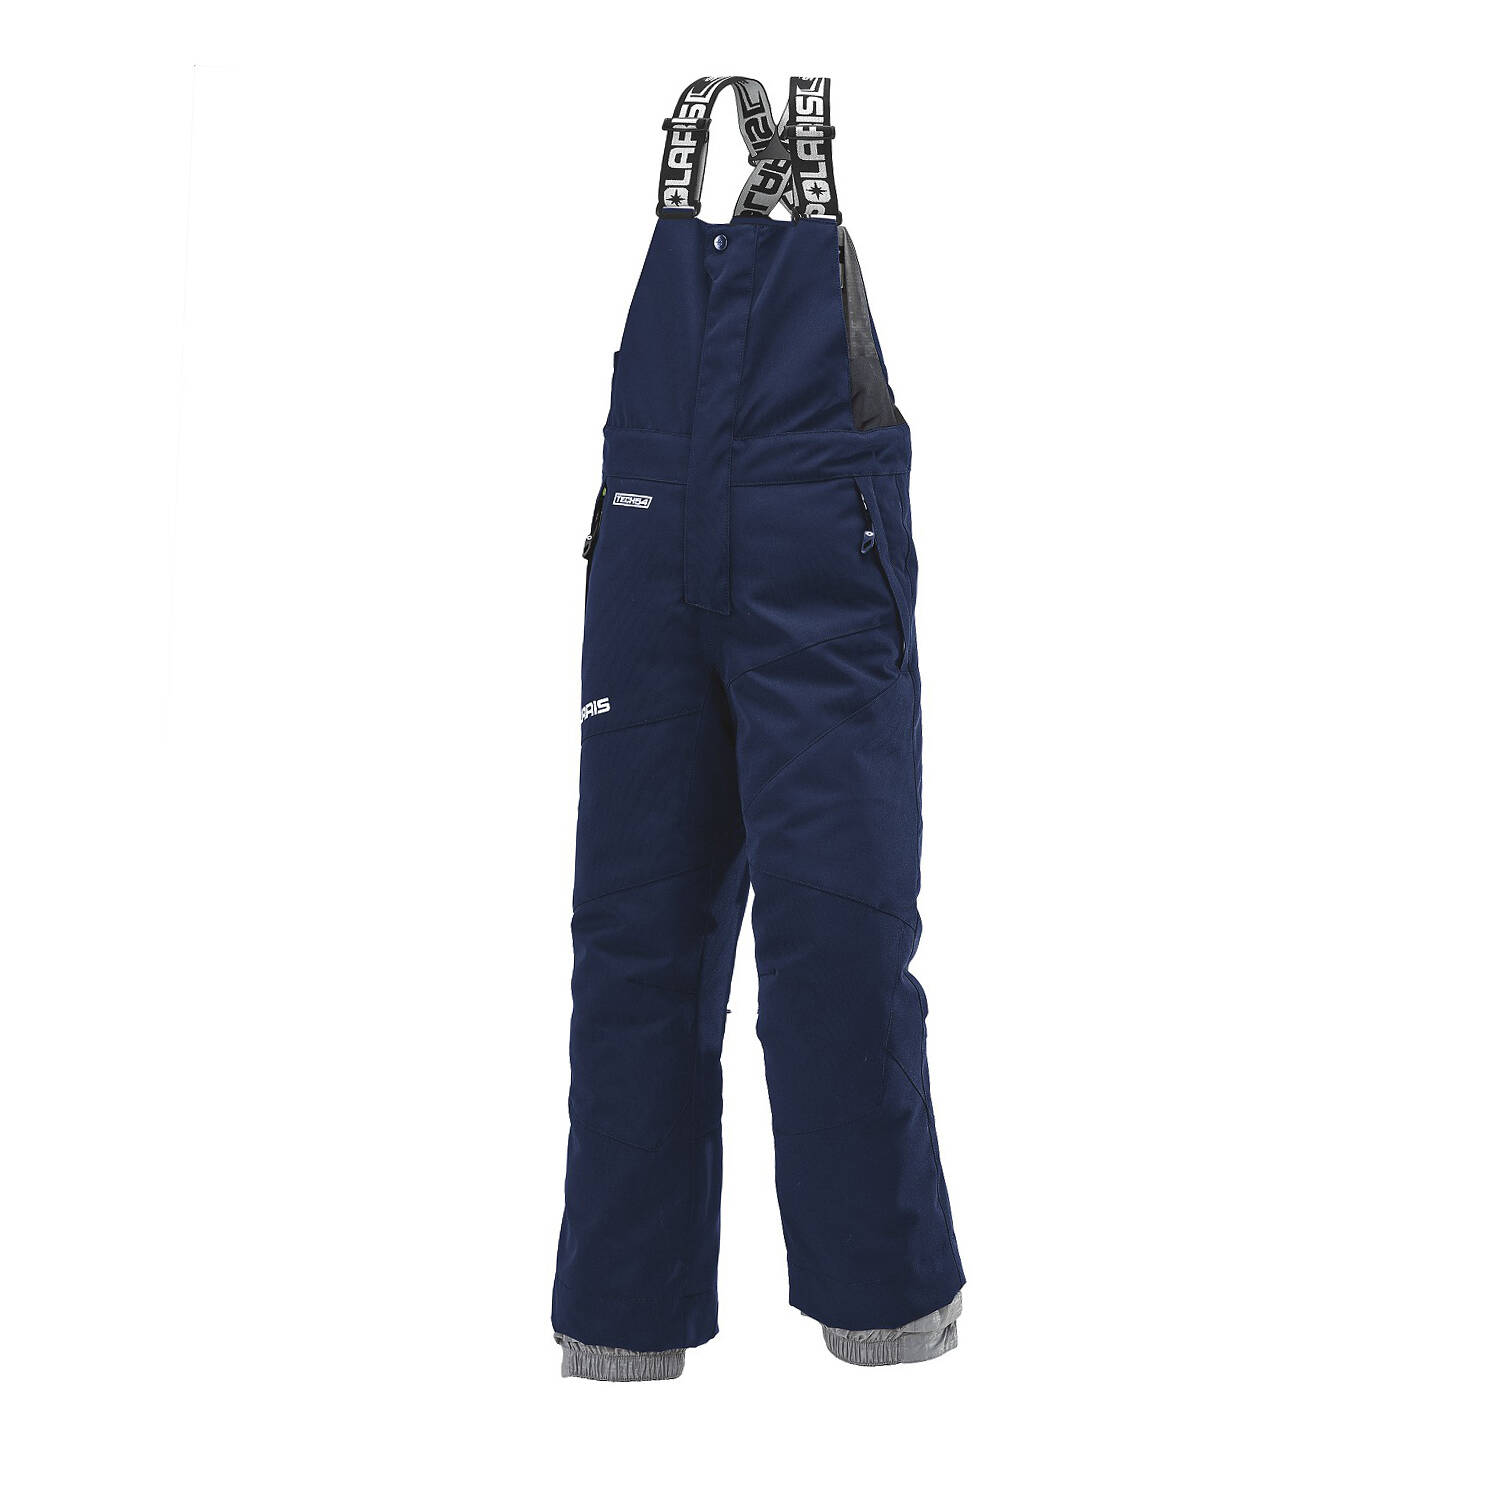 Youth TECH54™ Switchback Bib Snow Pants with Waterproof Breathable Membrane, Navy